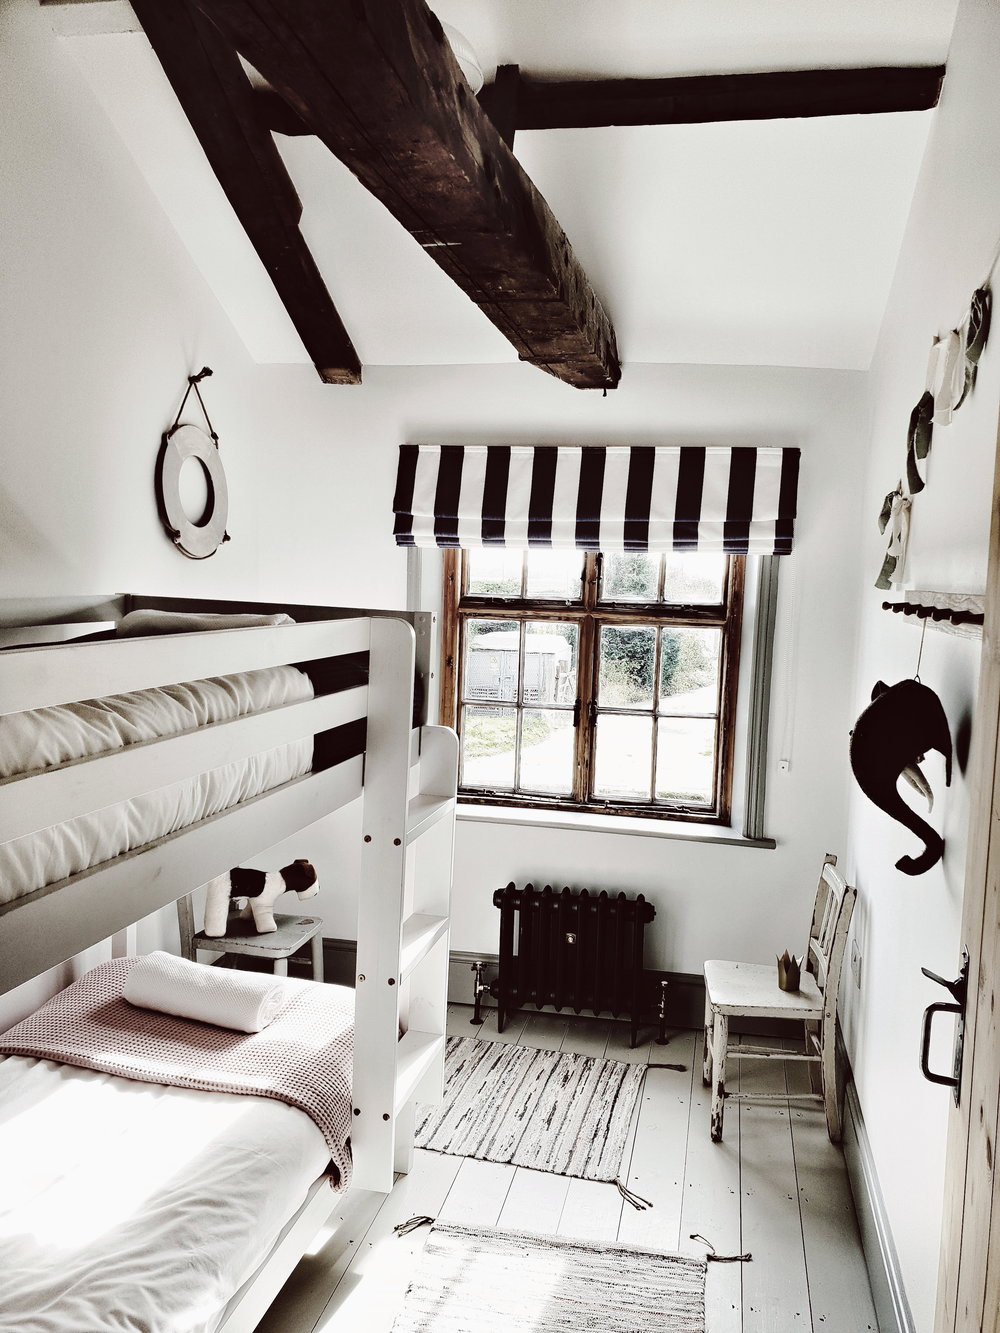 The lovely single bedroom complete with bunk beds and lots of thoughtful touches for junior guests